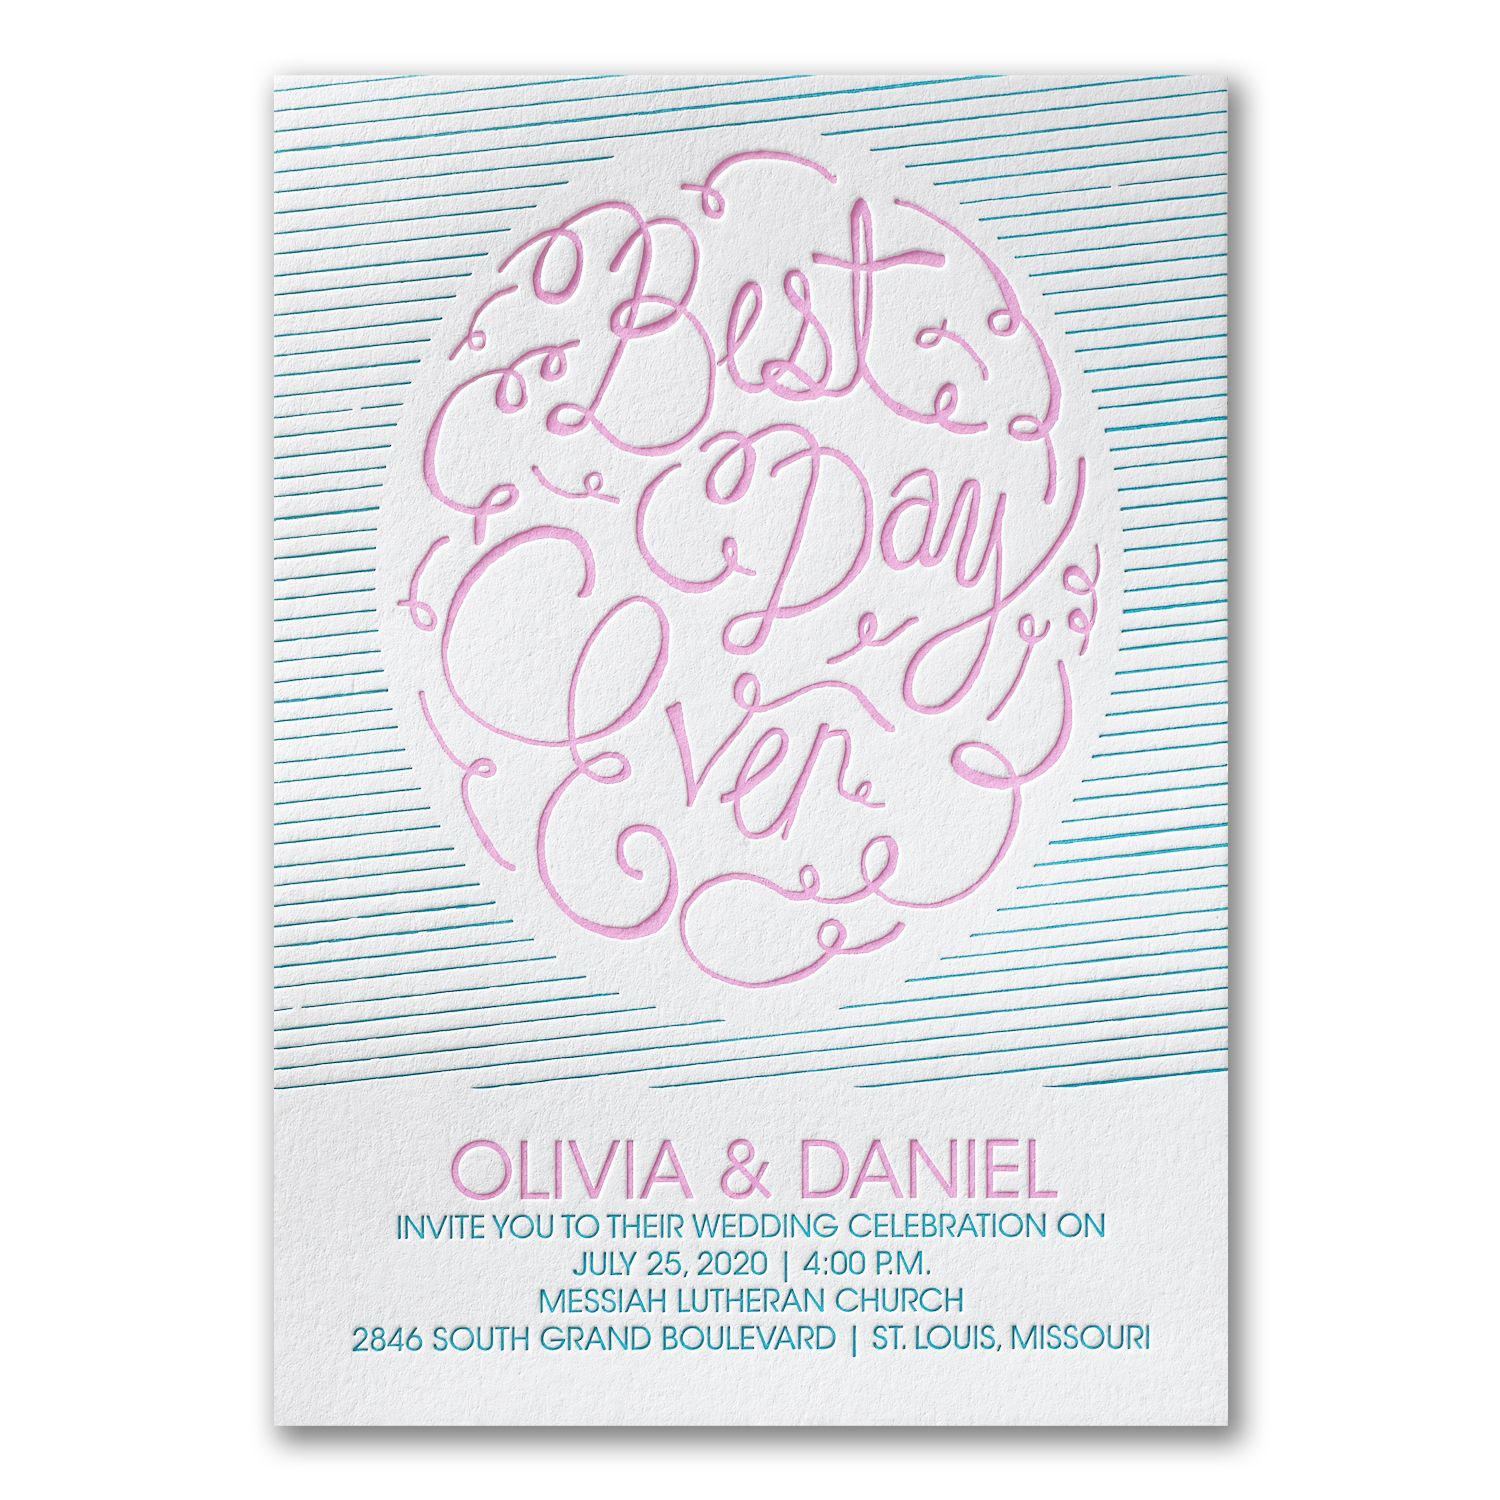 Wedding Venues Near Me Cheap: Only The Best - Invitation